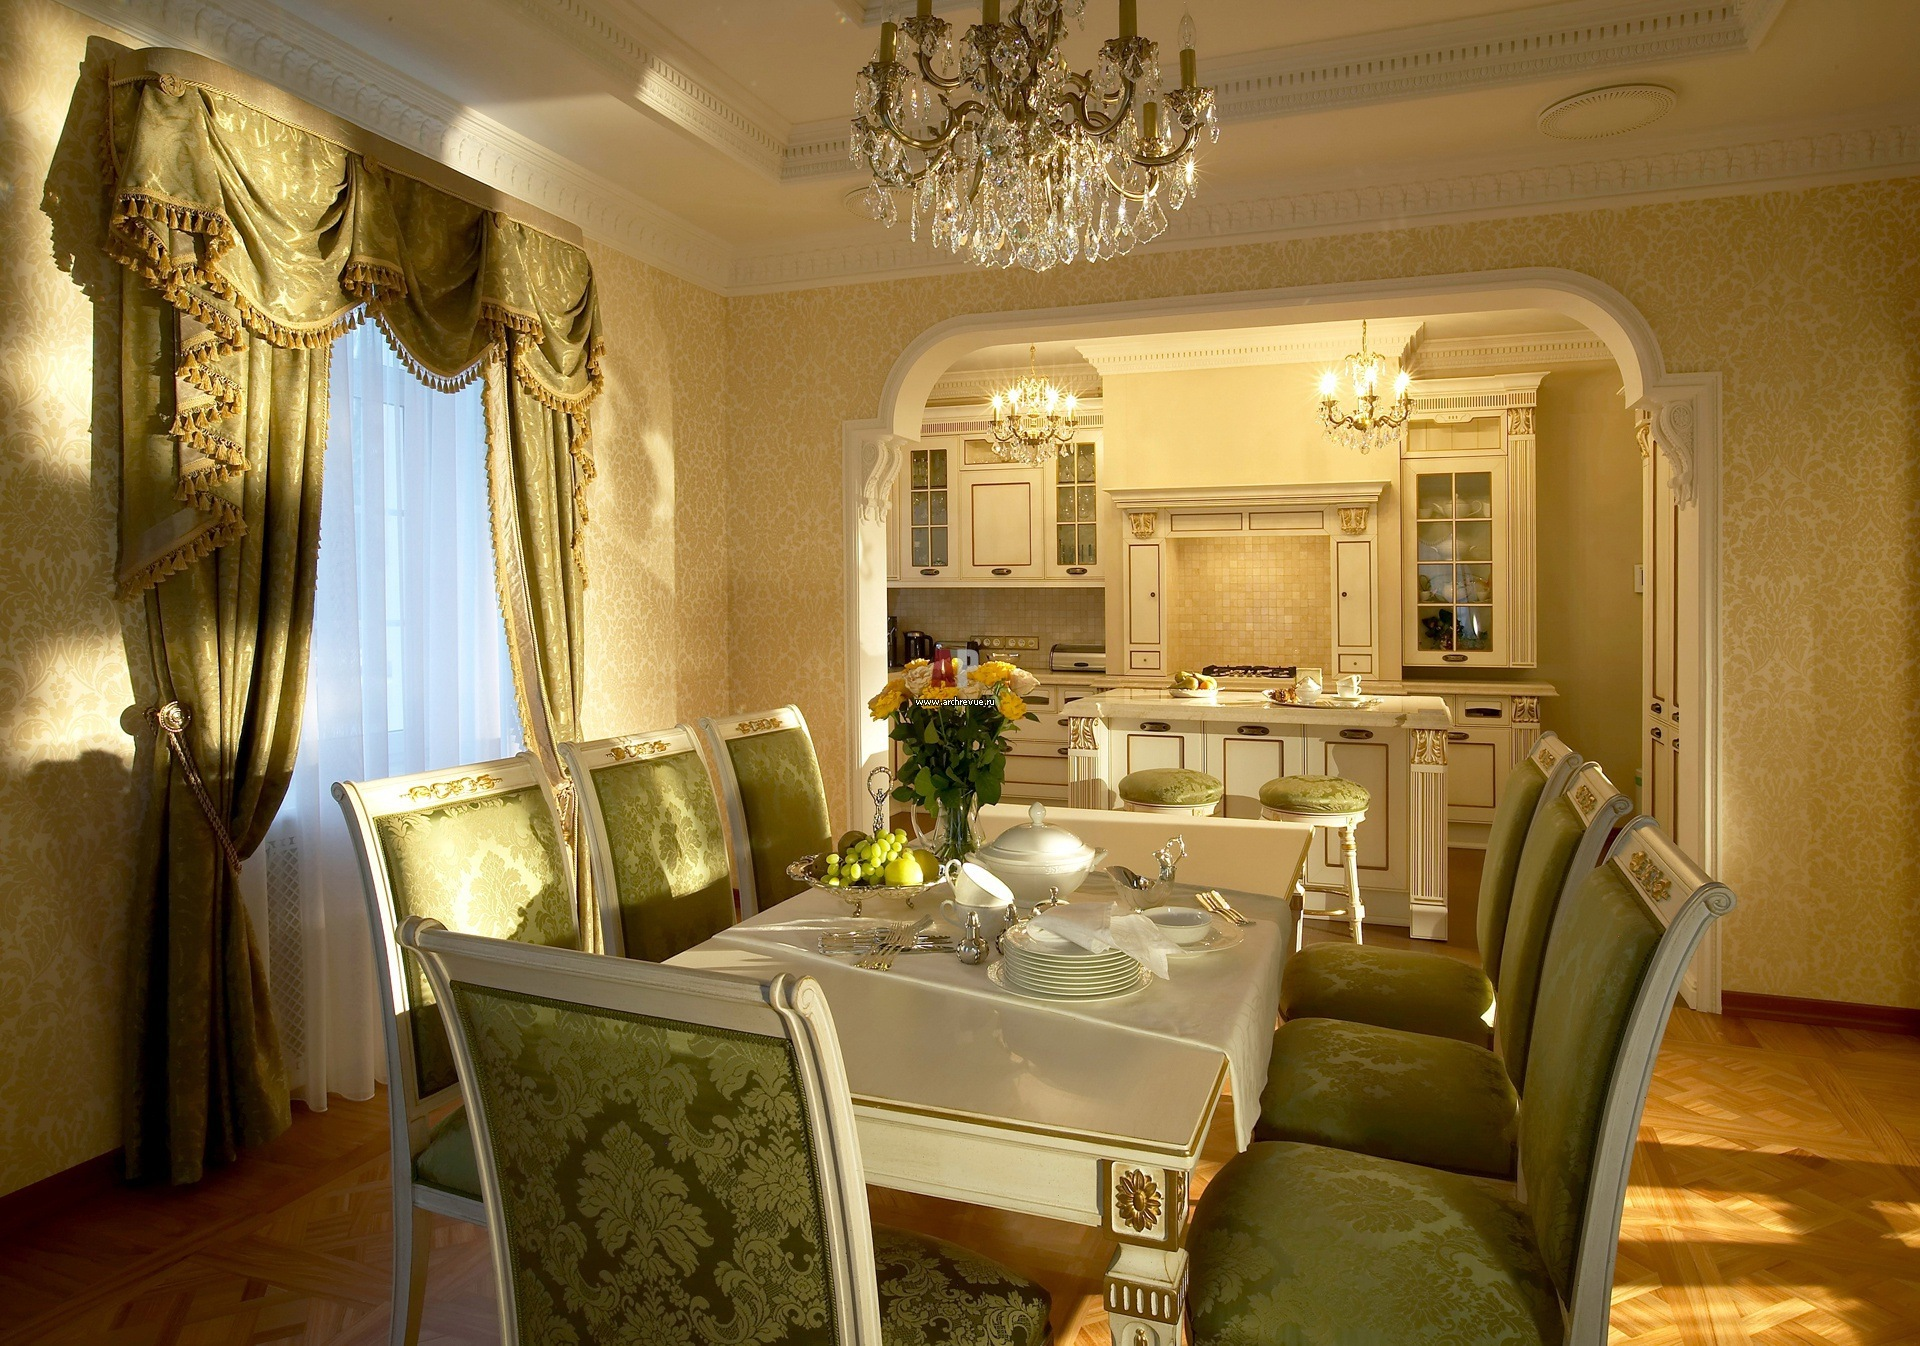 Arch in the Living Room: Unusual Design with Photos. Green designed dining area in Classic style